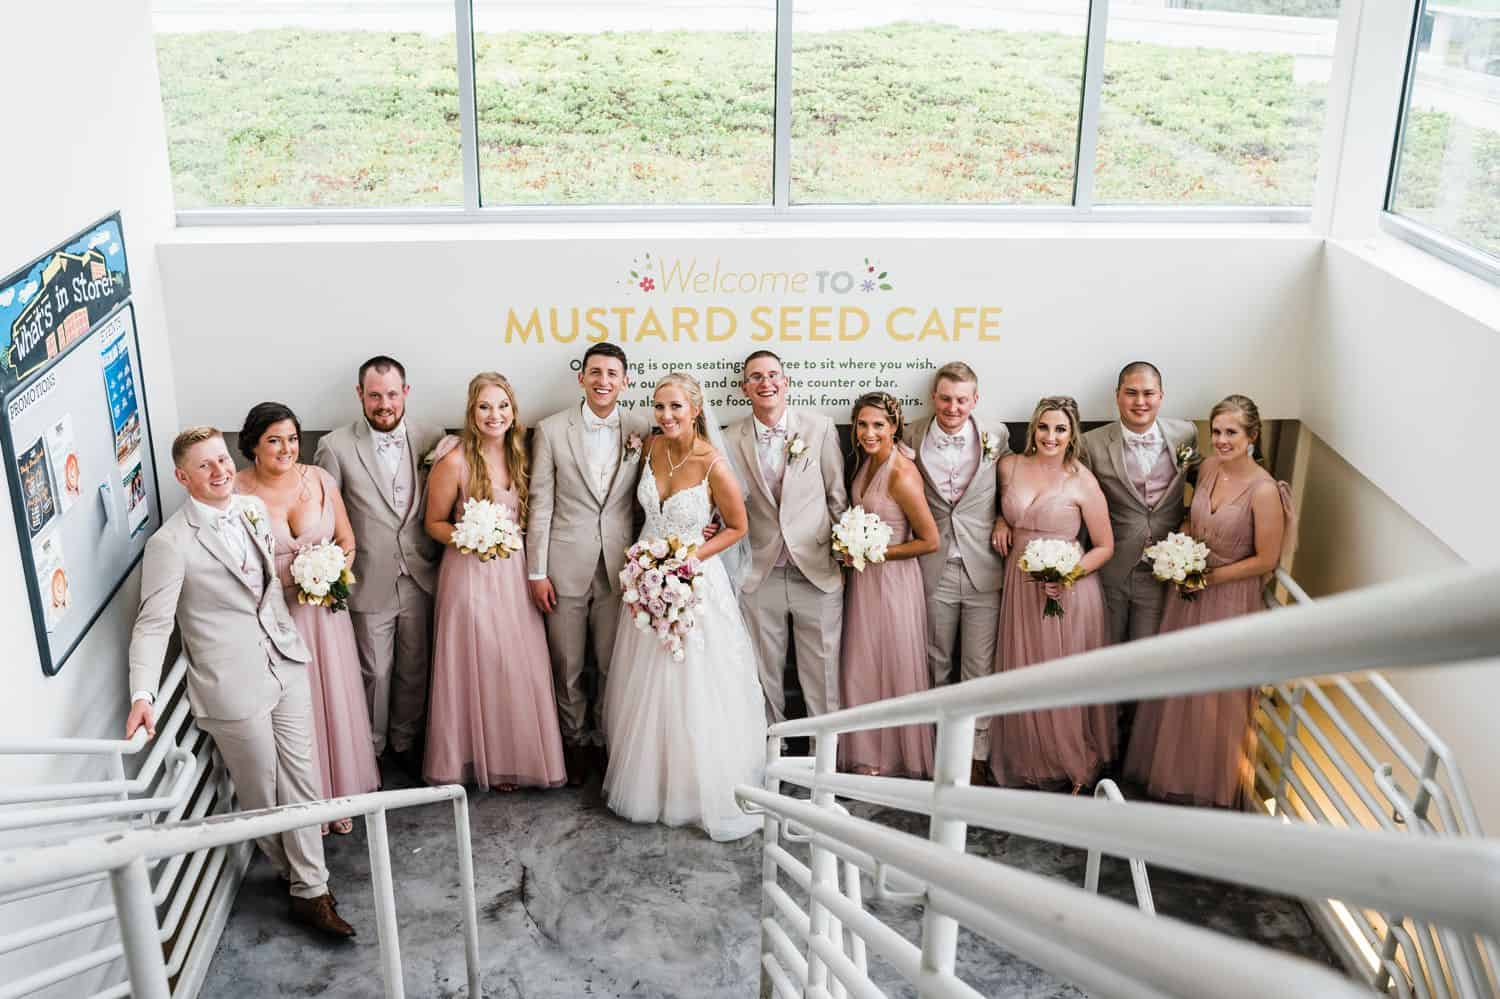 A wedding party poses at the food of a staircase in a bright, naturally-lit studio space.